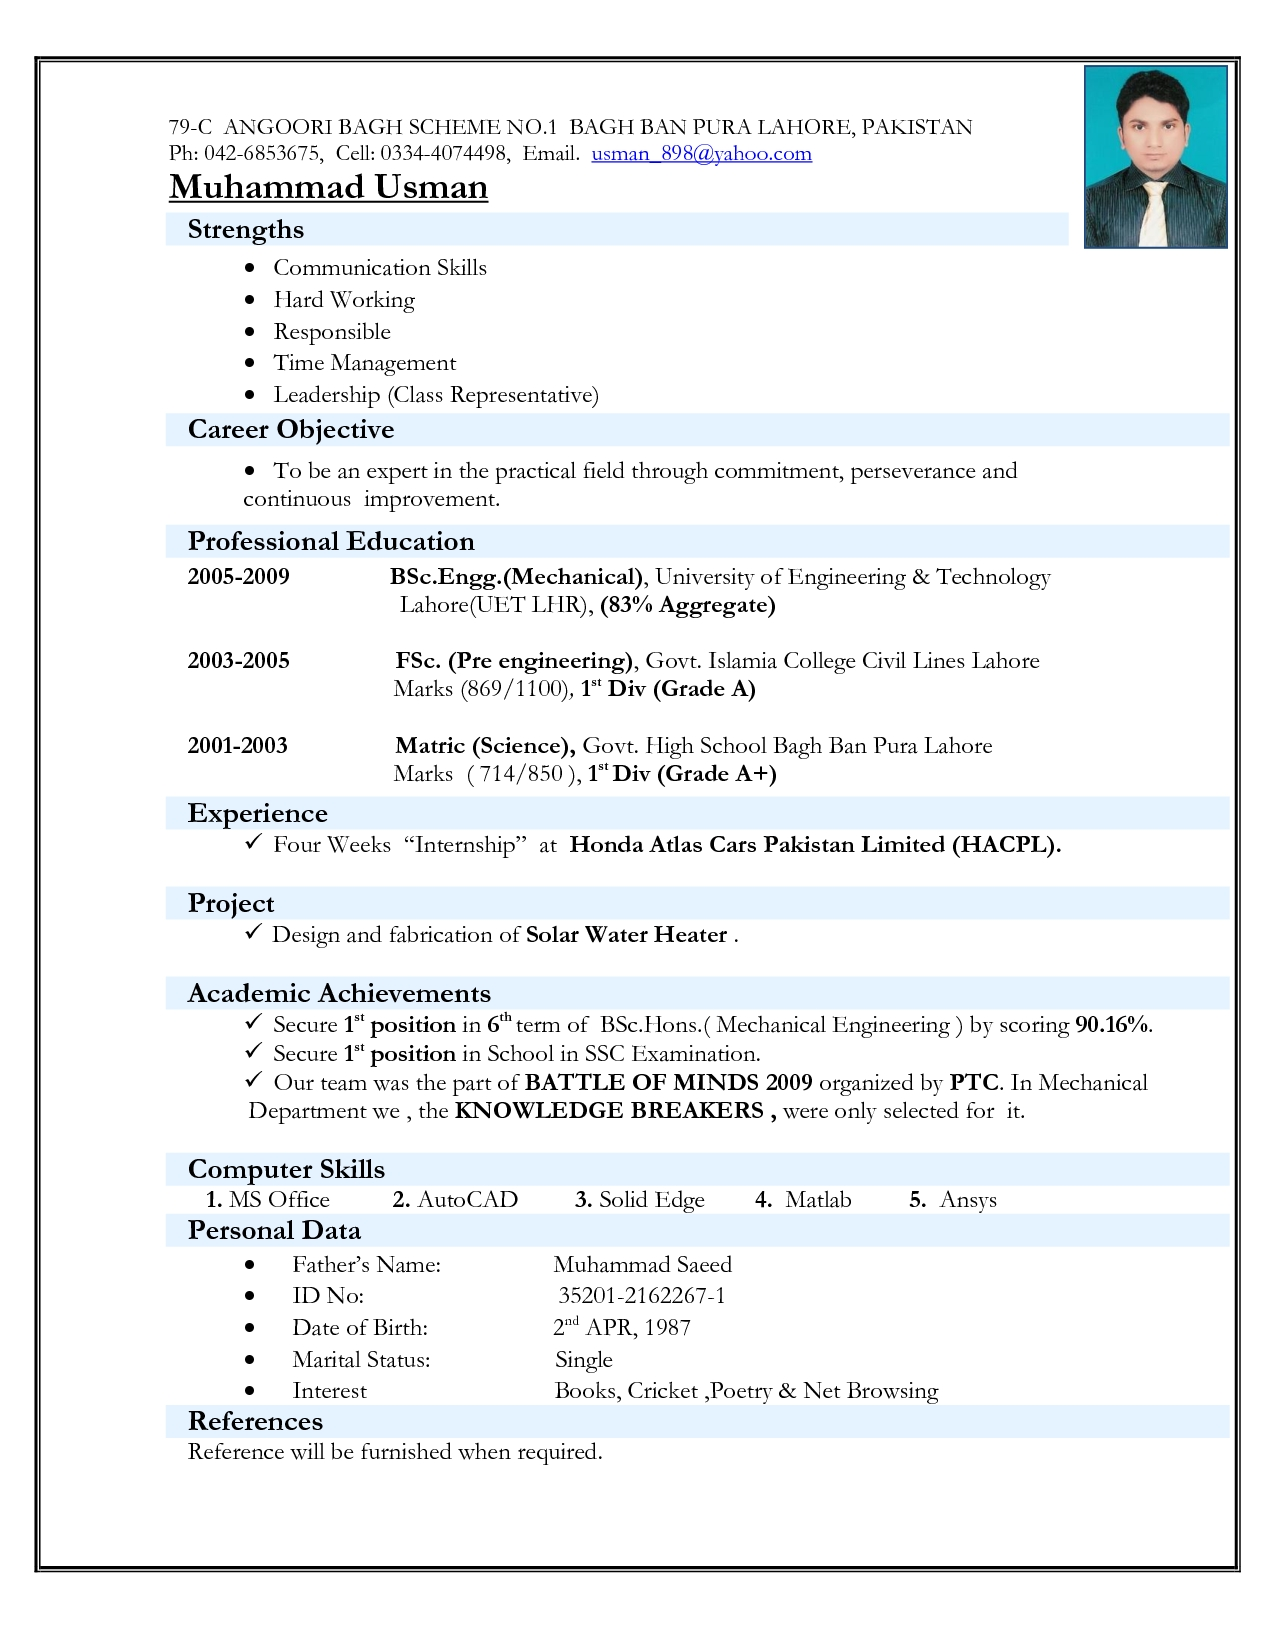 free resume format for freshers writing service my blog with photo machine shop Resume Free Download Resume Format For Freshers With Photo